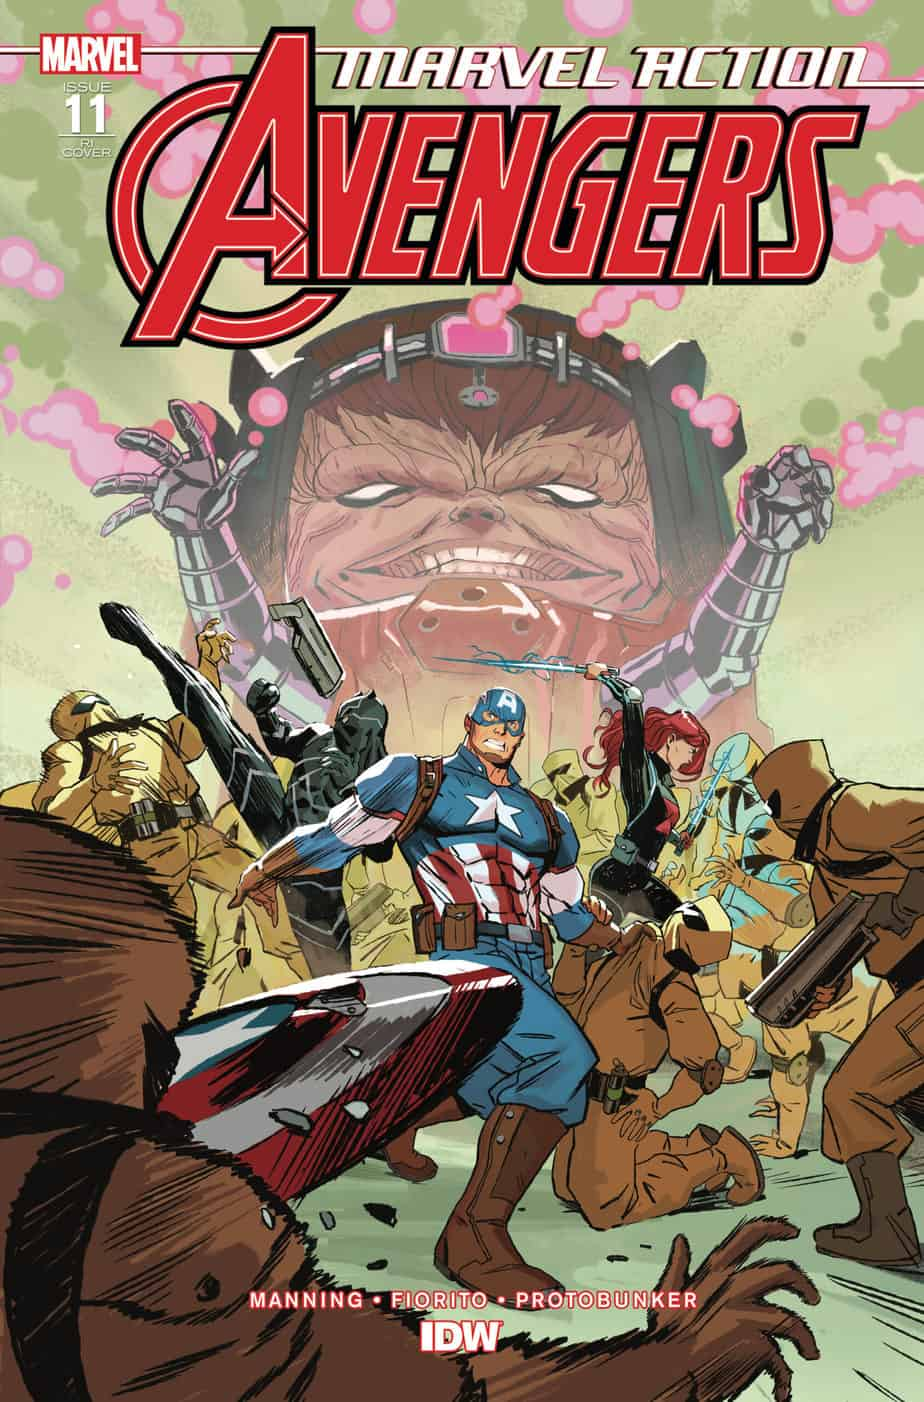 Marvel Action: Avengers #11 - Retailer Incentive Cover